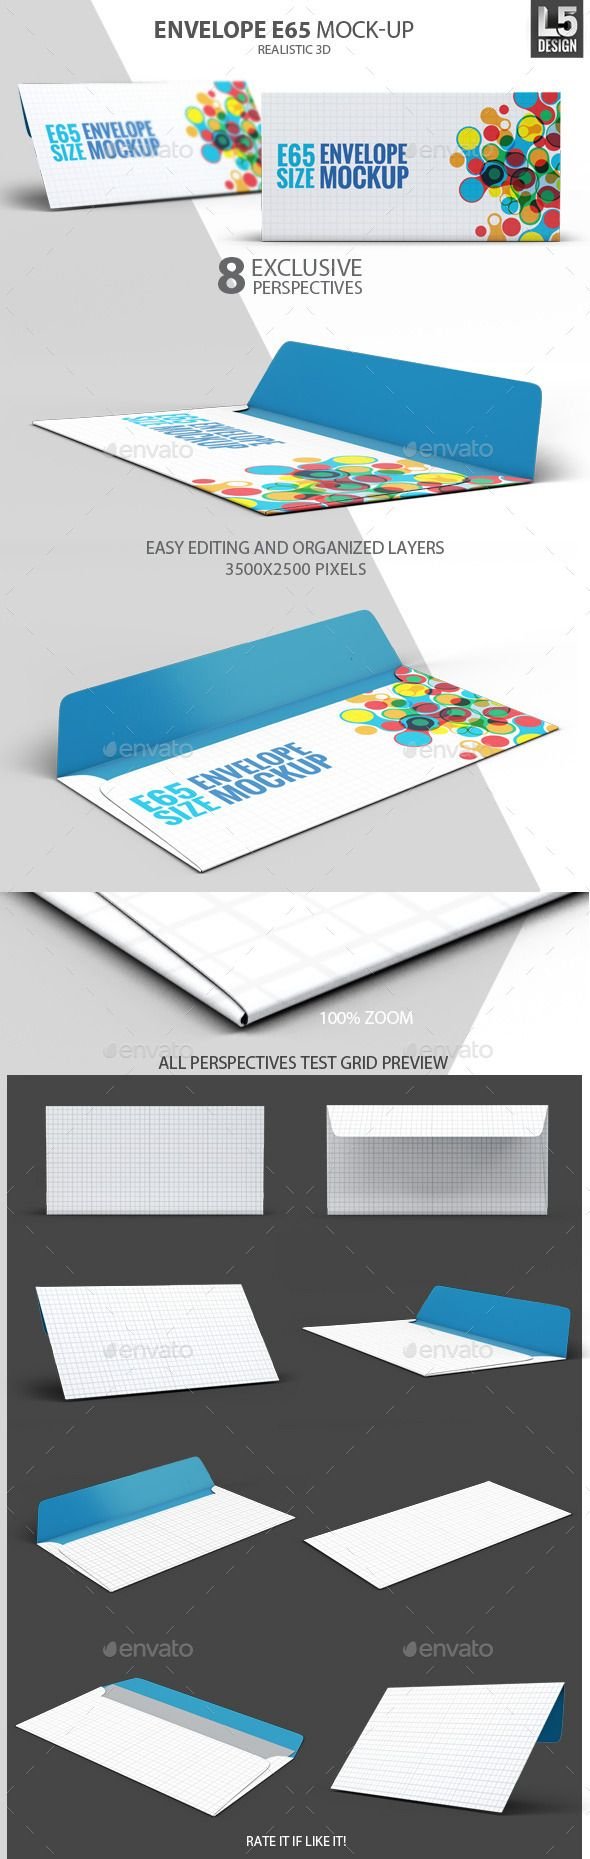 Envelope E65 MockUp — Photoshop PSD #contact #mailing • Available here → https://graphicriver.net/item/envelope-e65-mockup/10415761?ref=pxcr